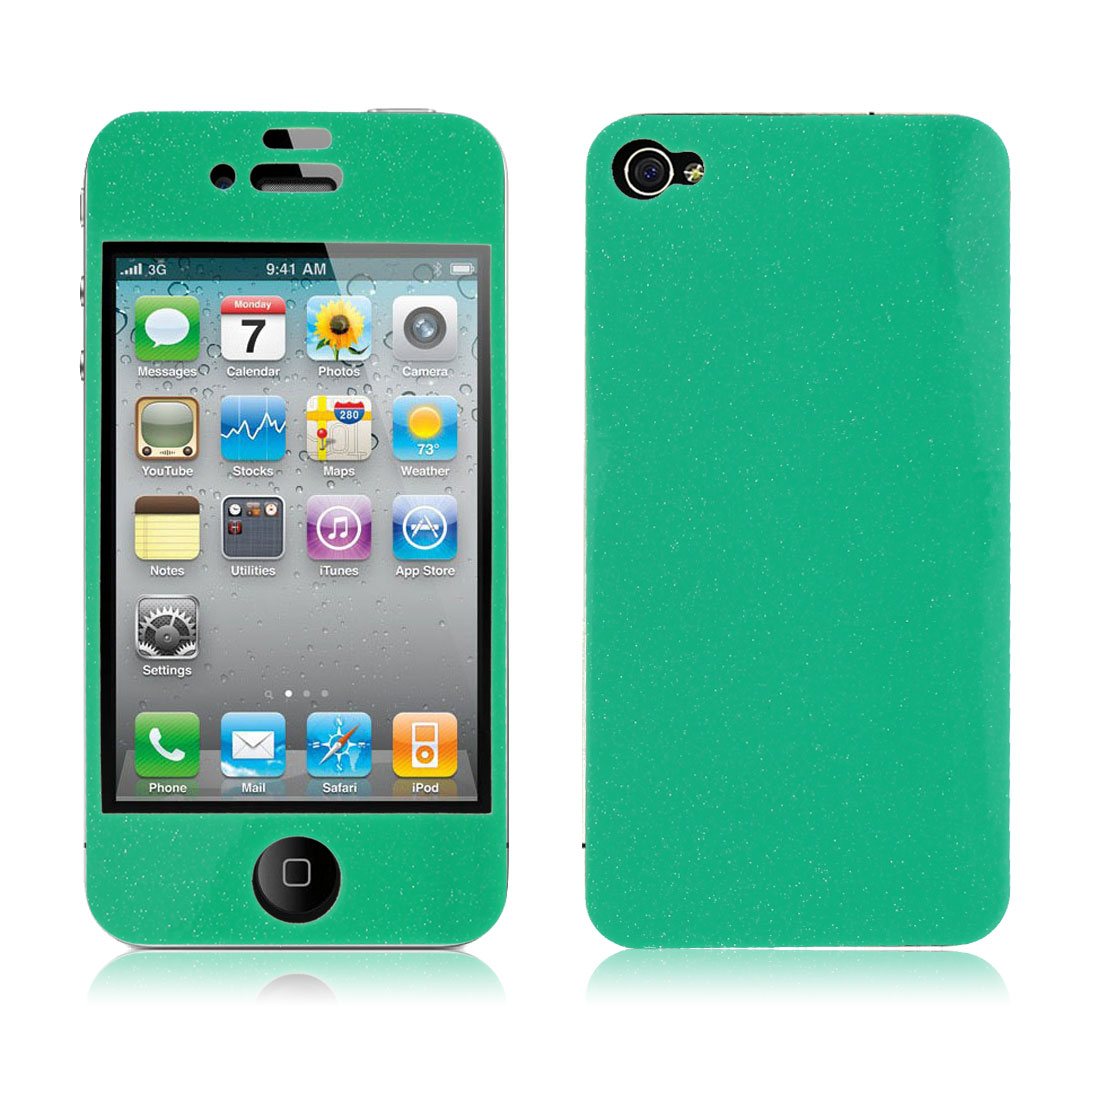 Glittery Powder Green Front Back Sticker Decal Cover + Screen Guard for iPhone 4 4G 4S 4GS